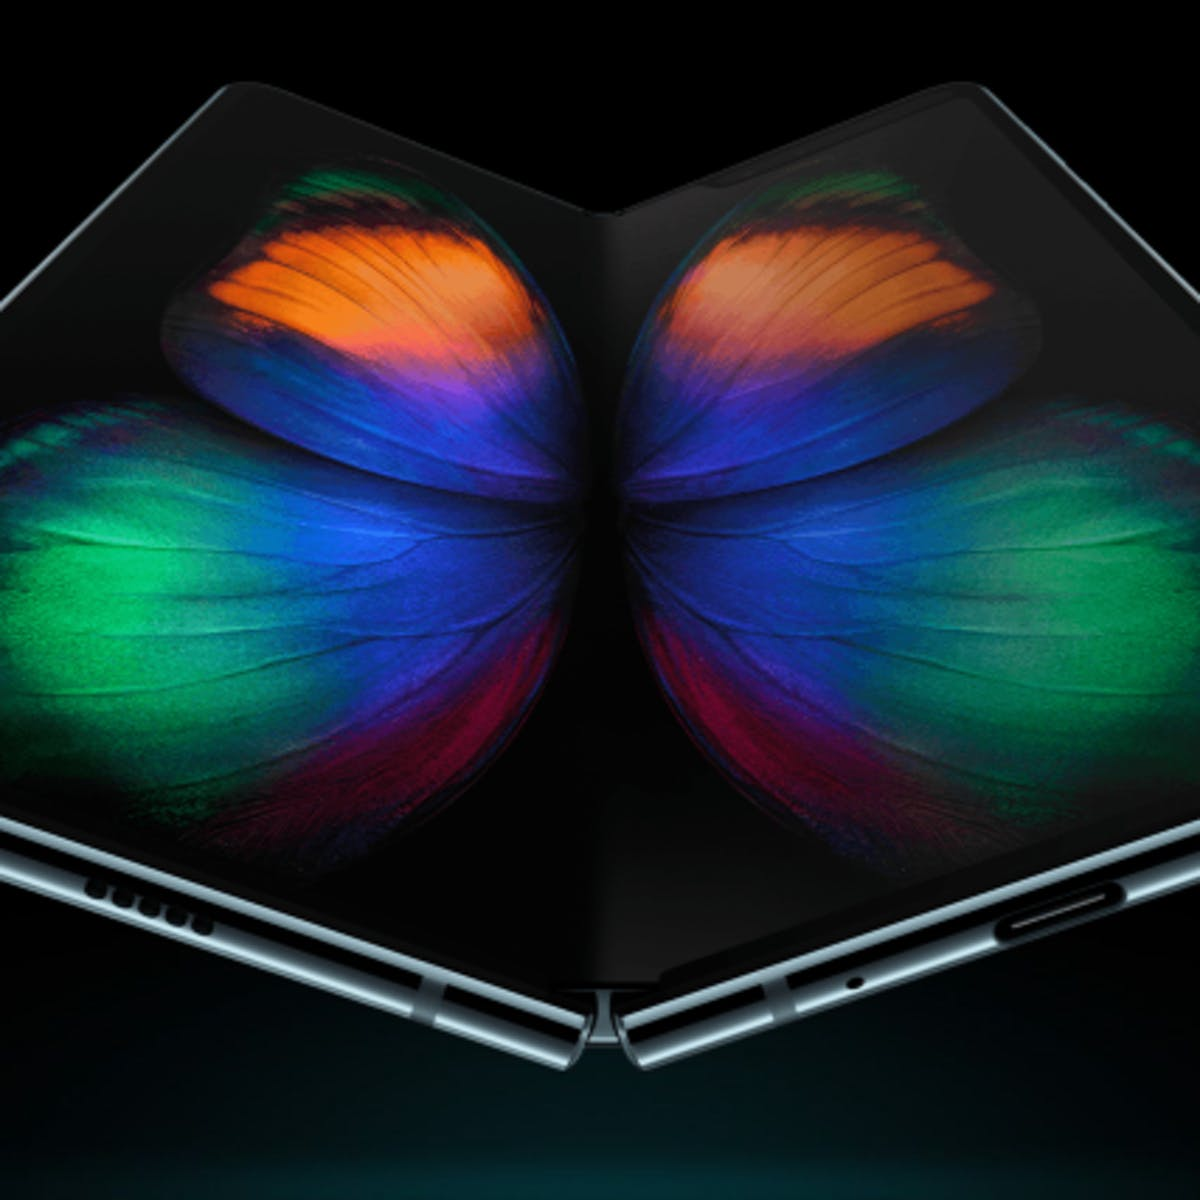 Samsung Galaxy Fold: Release Date, Price, Rumors for the